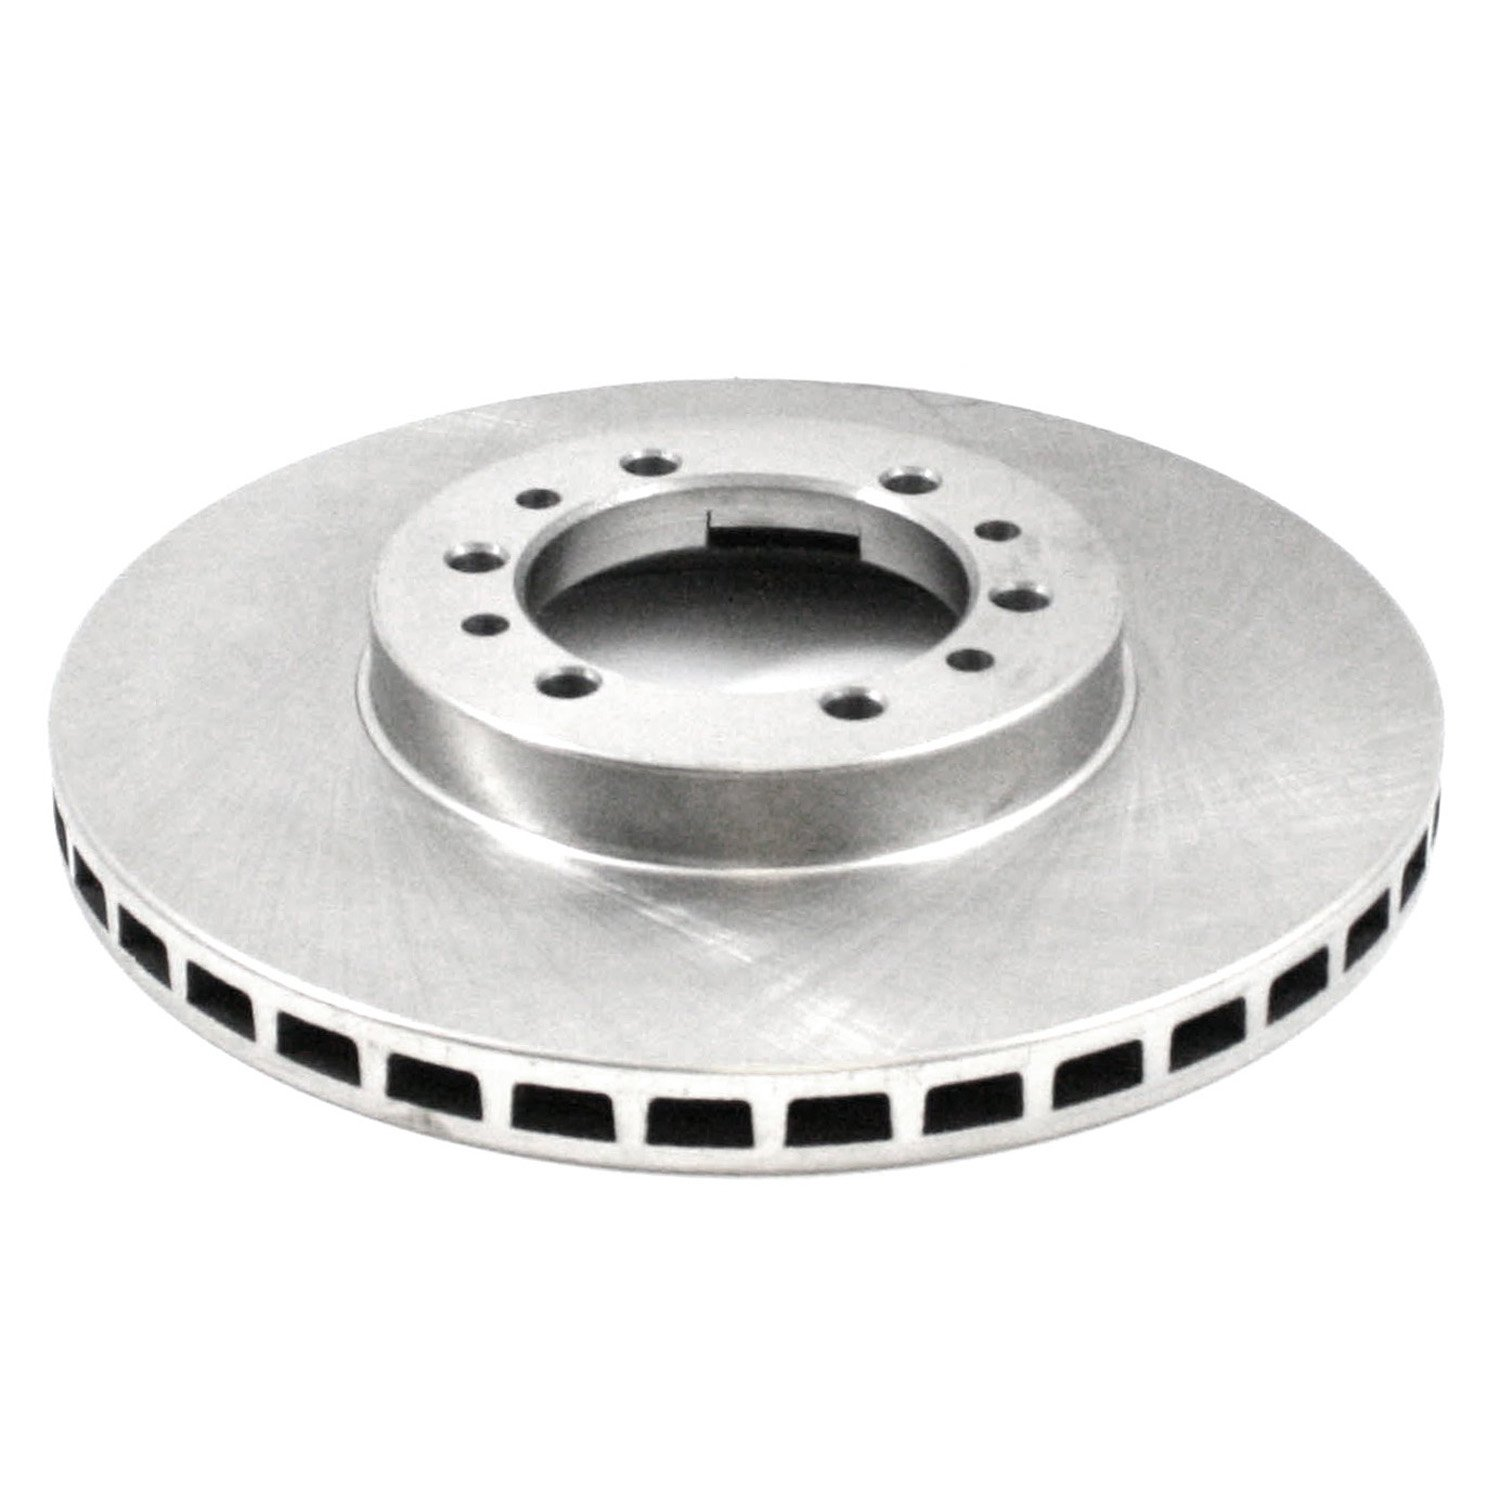 DuraGo BR31239 Front Vented Disc Brake Rotor